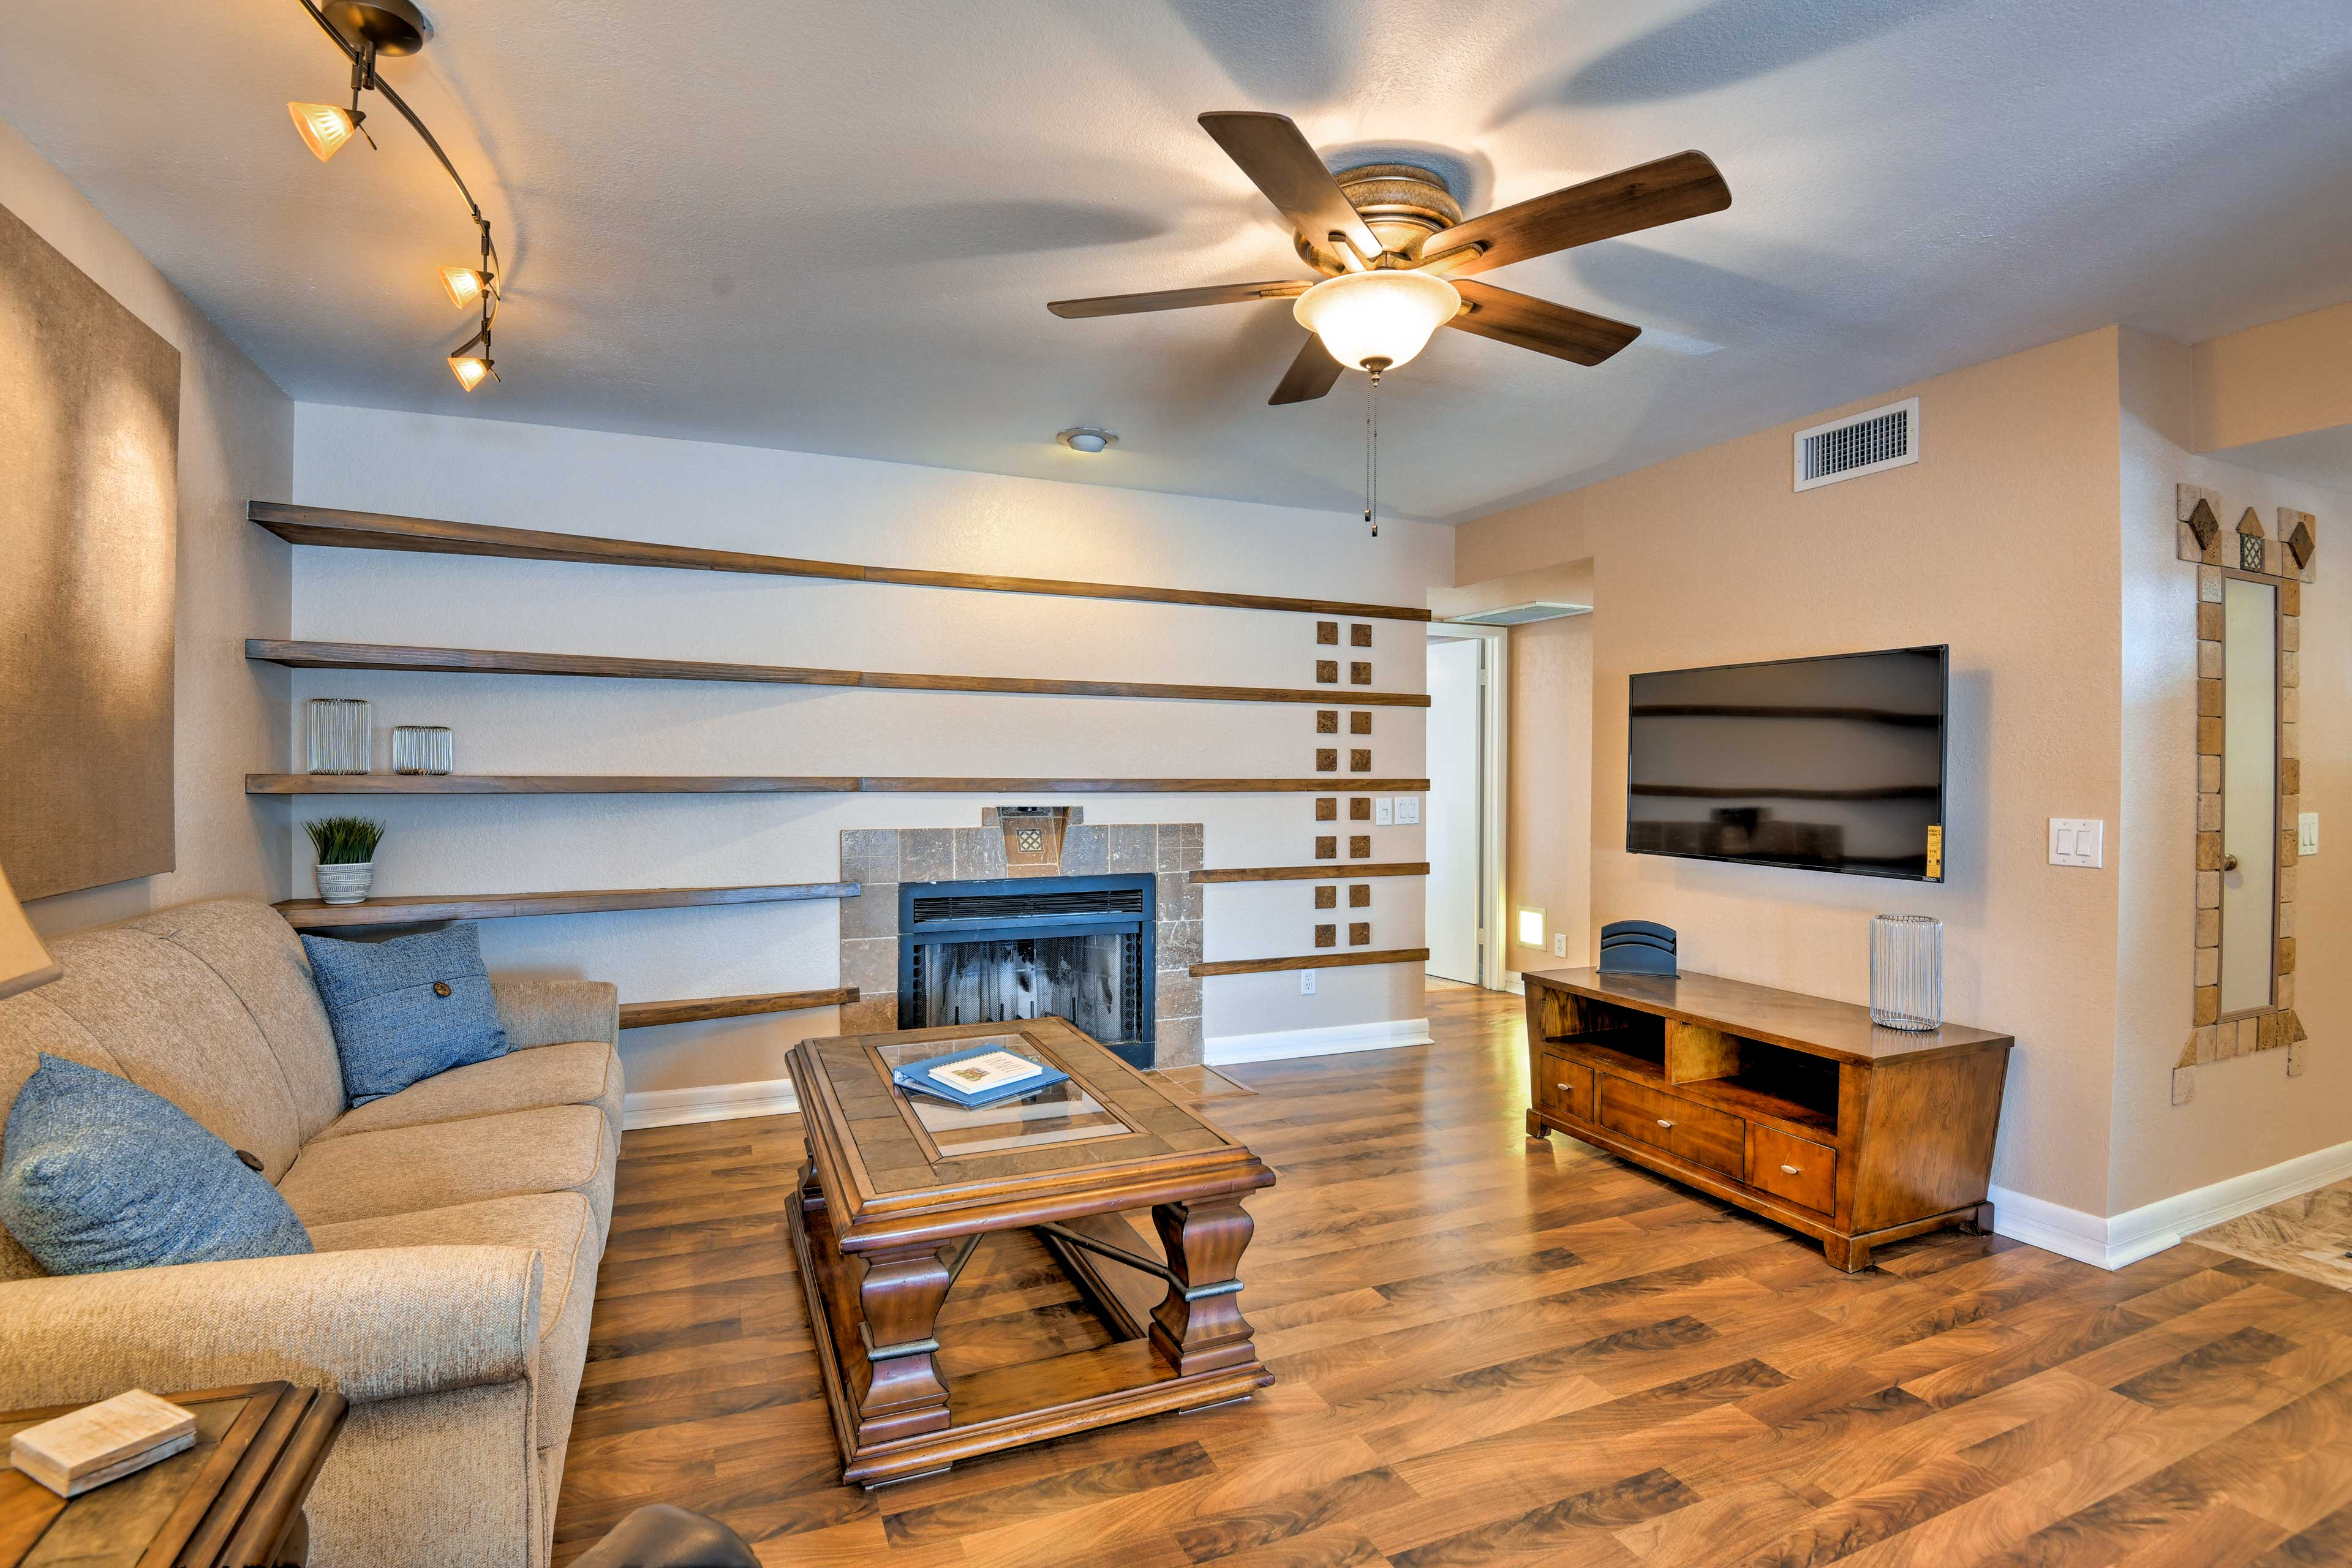 The space features a wood-burning fireplace and flat-screen Smart satellite TV.